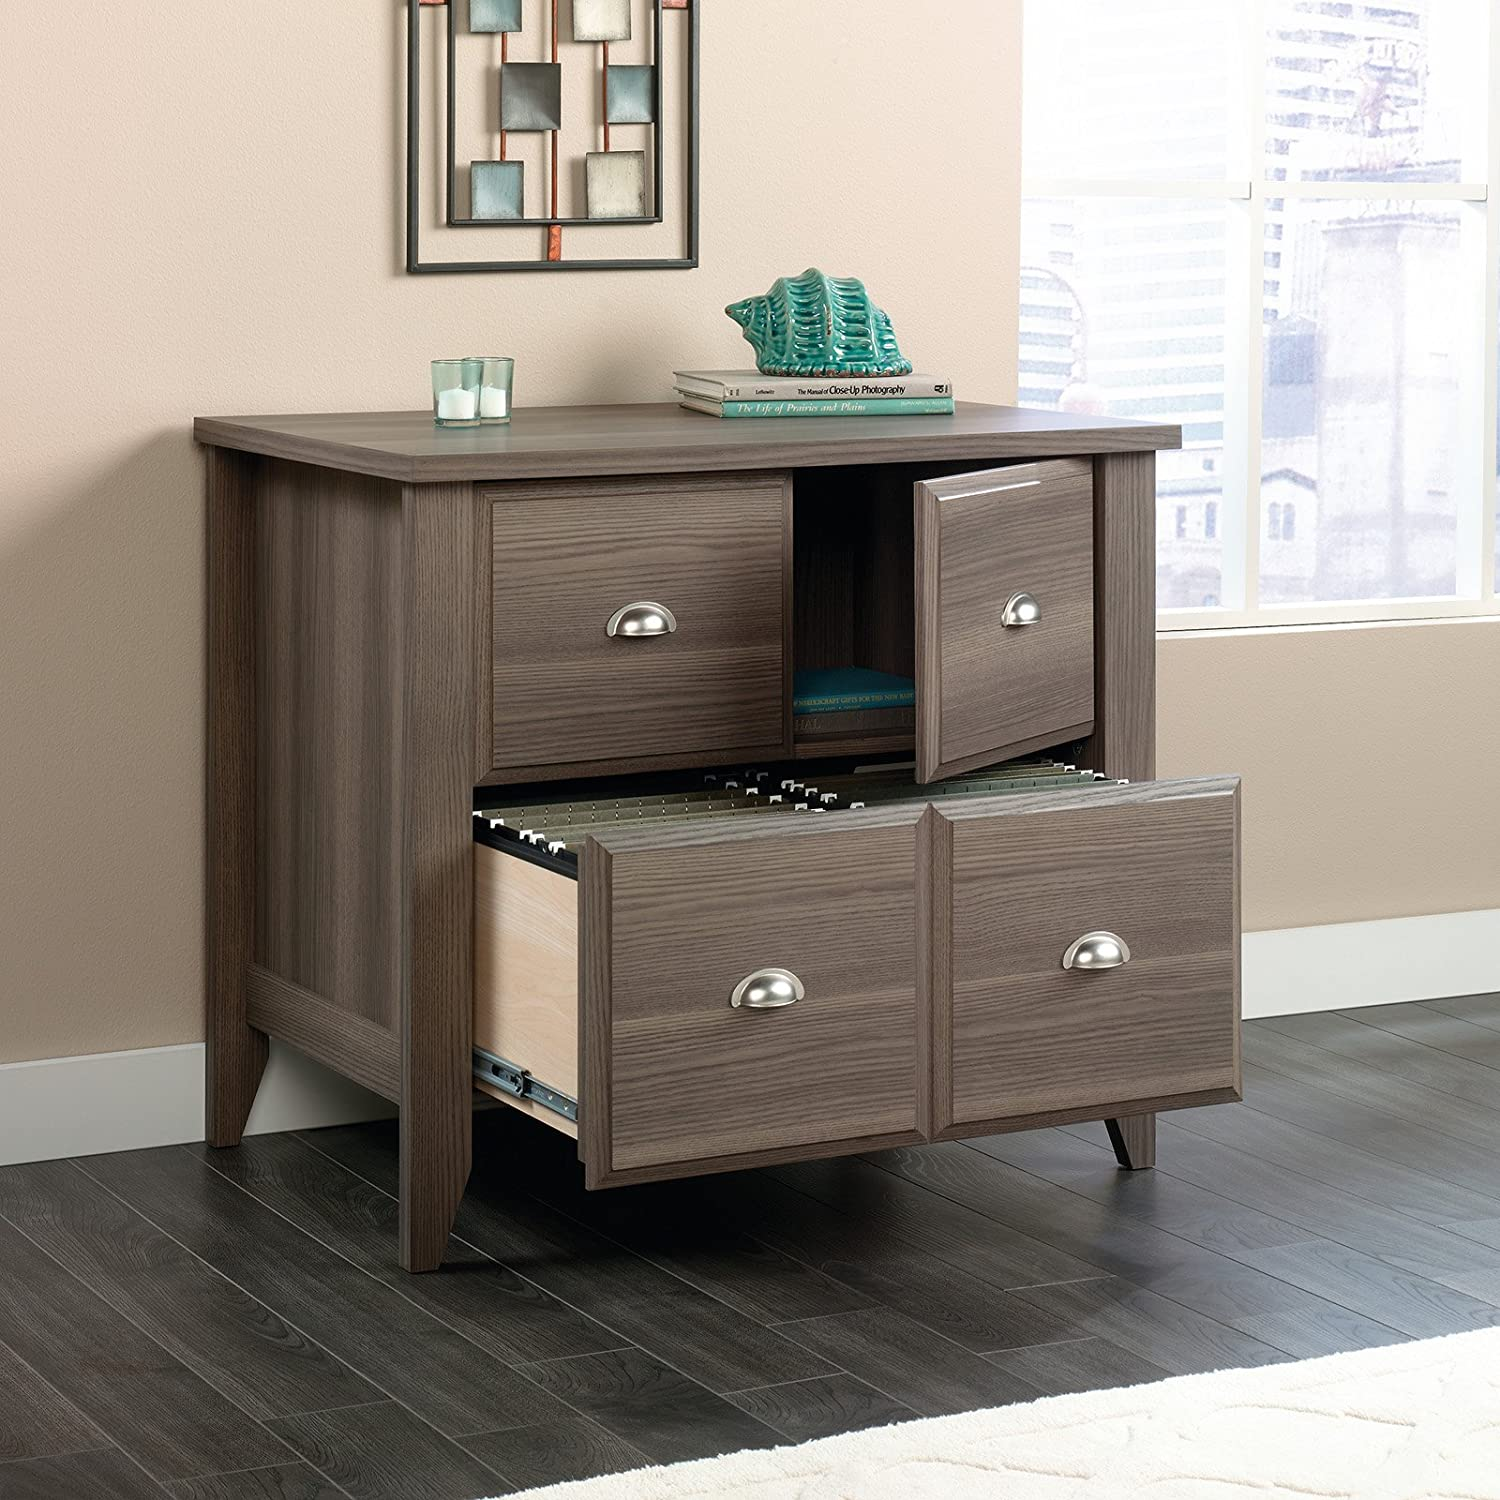 amazoncom sauder shoal creek lateral file in diamond ash home u0026 kitchen